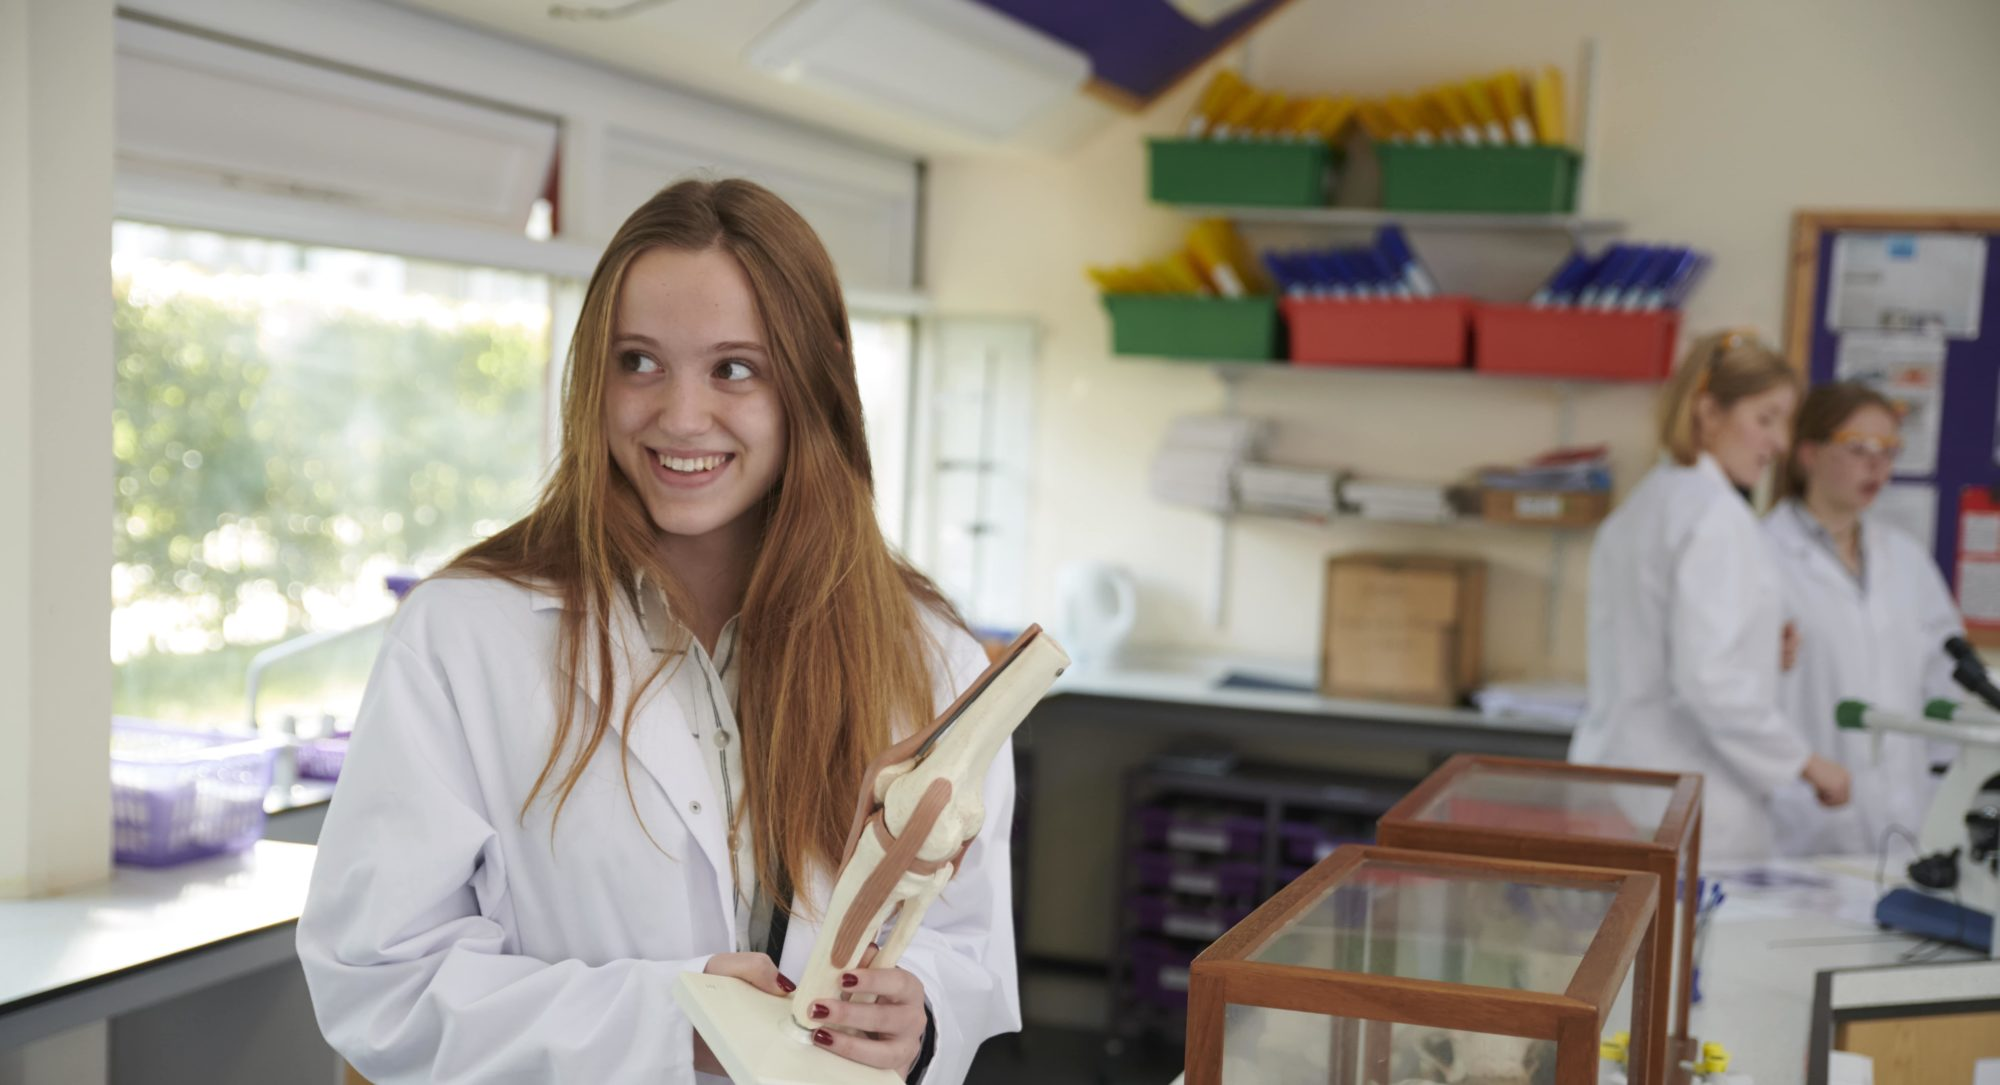 Magdalen College School pupil in lab coat studying science